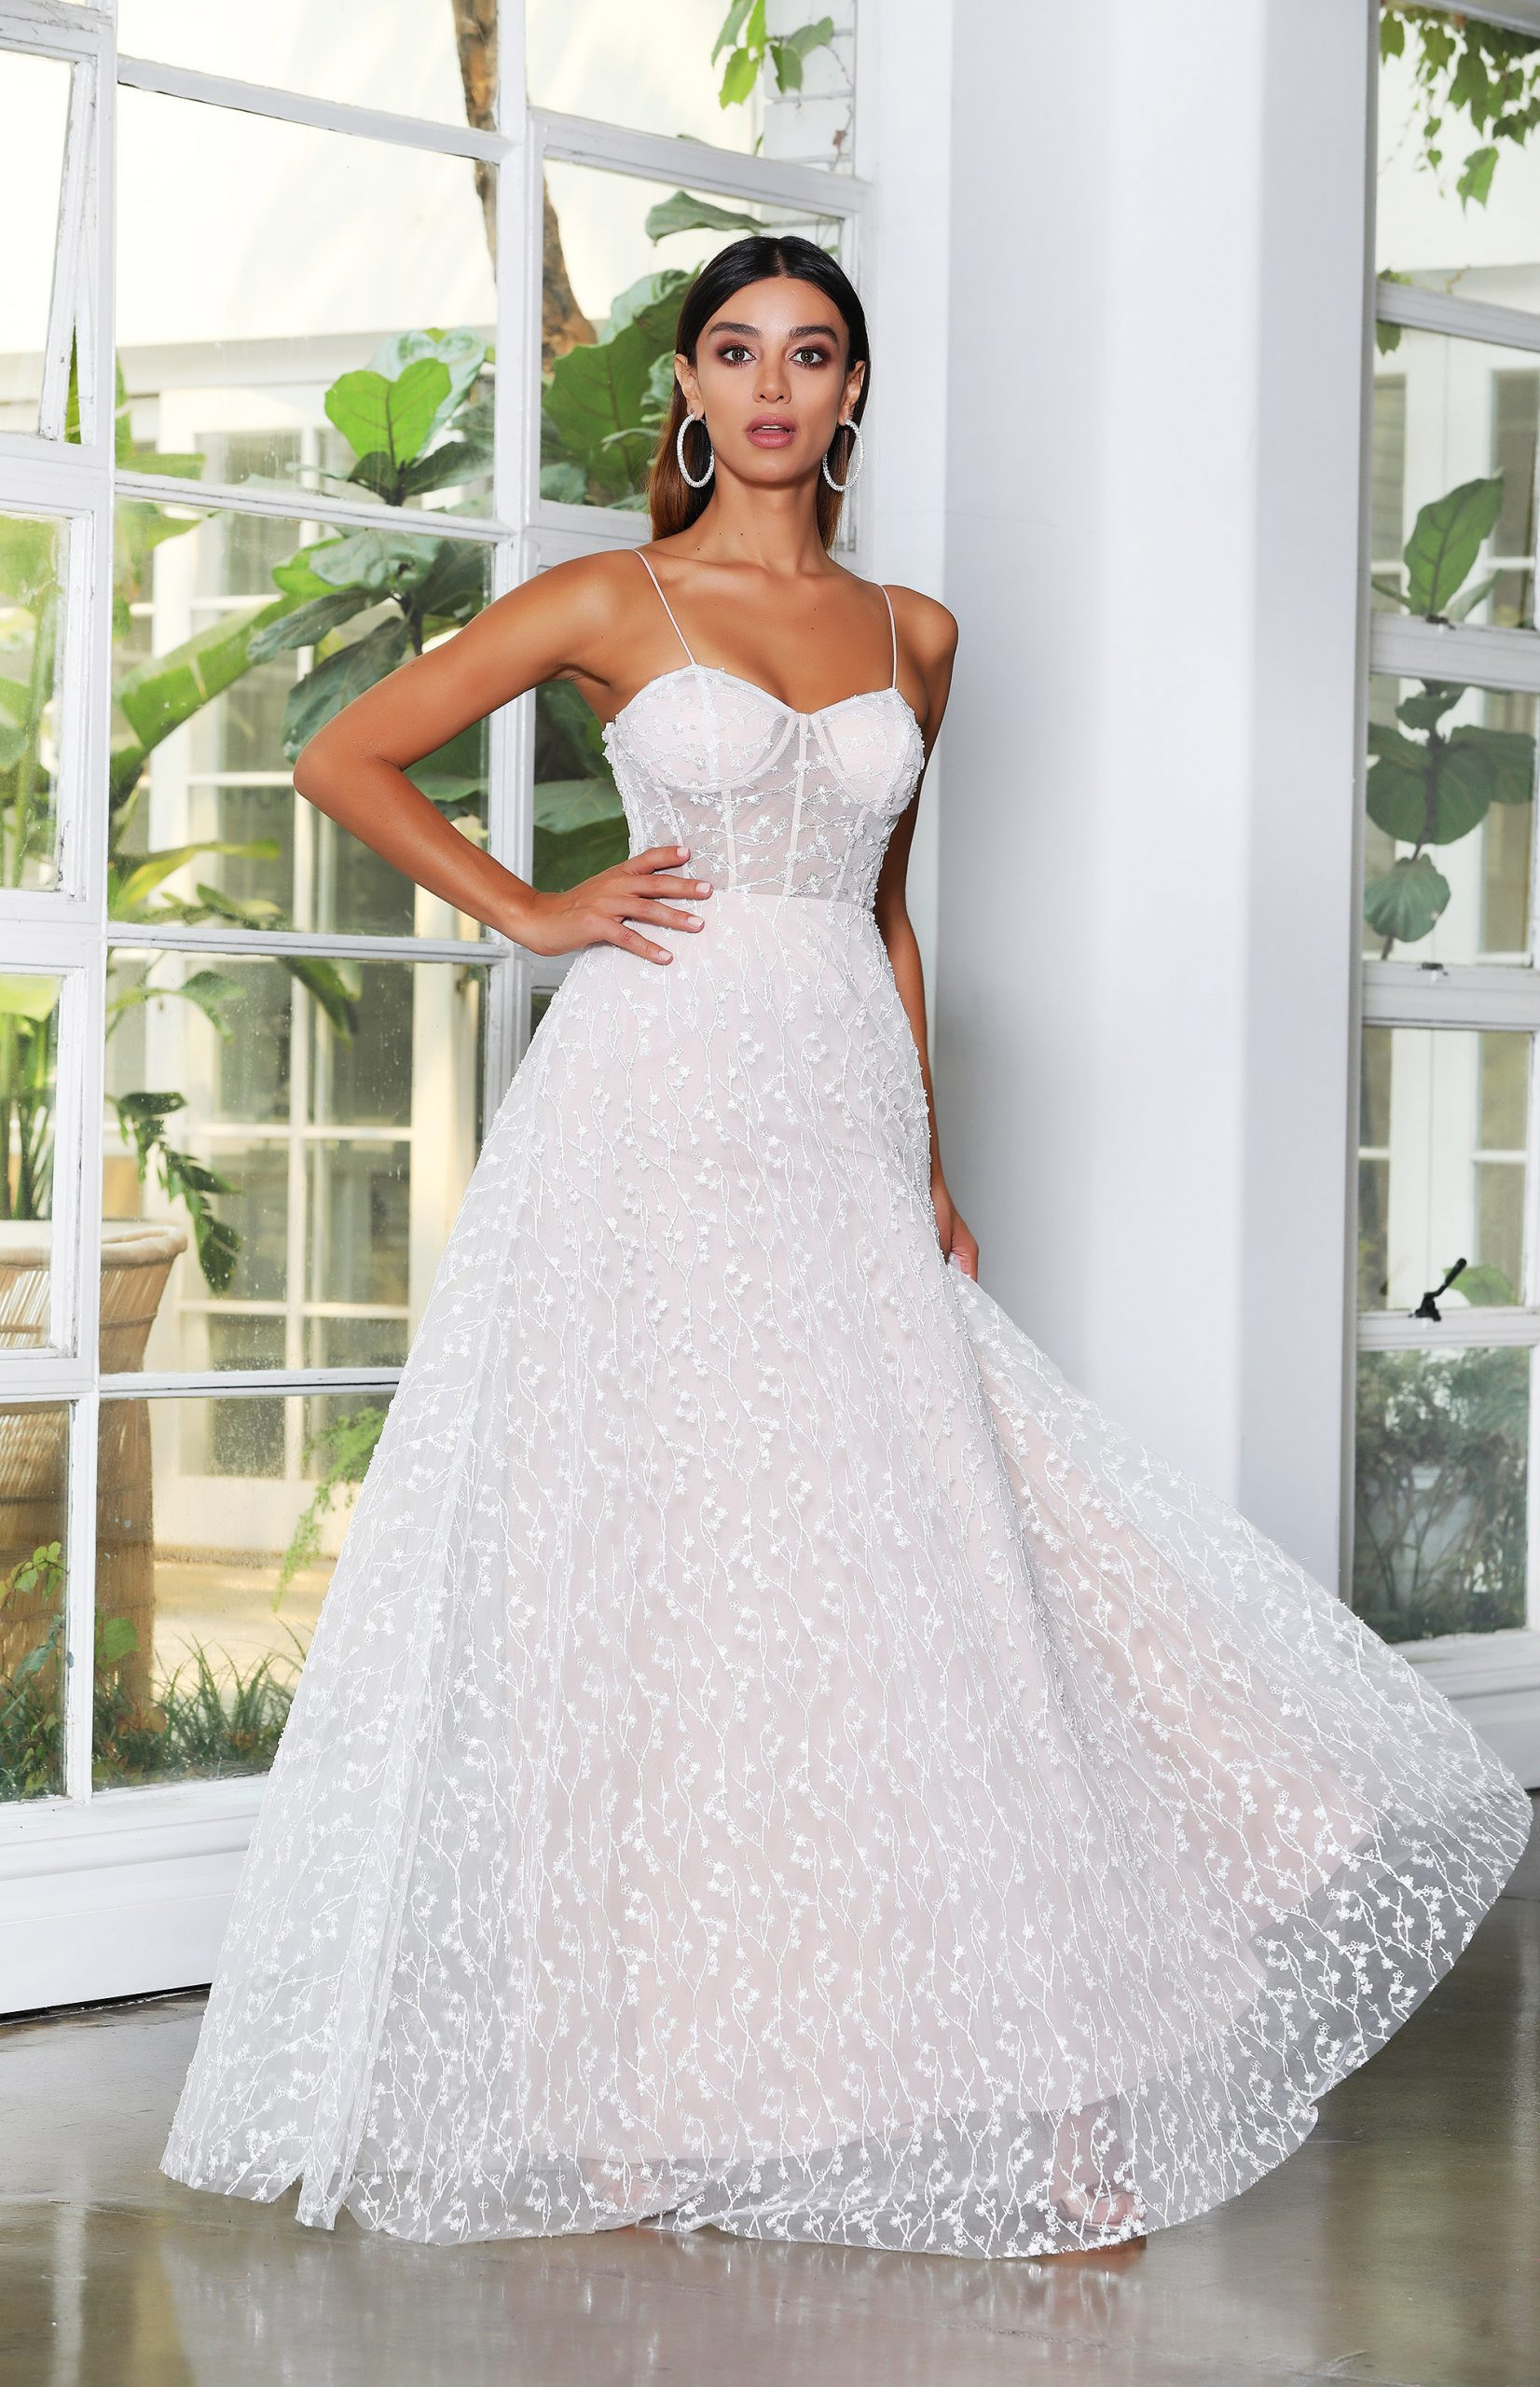 weddingdress28